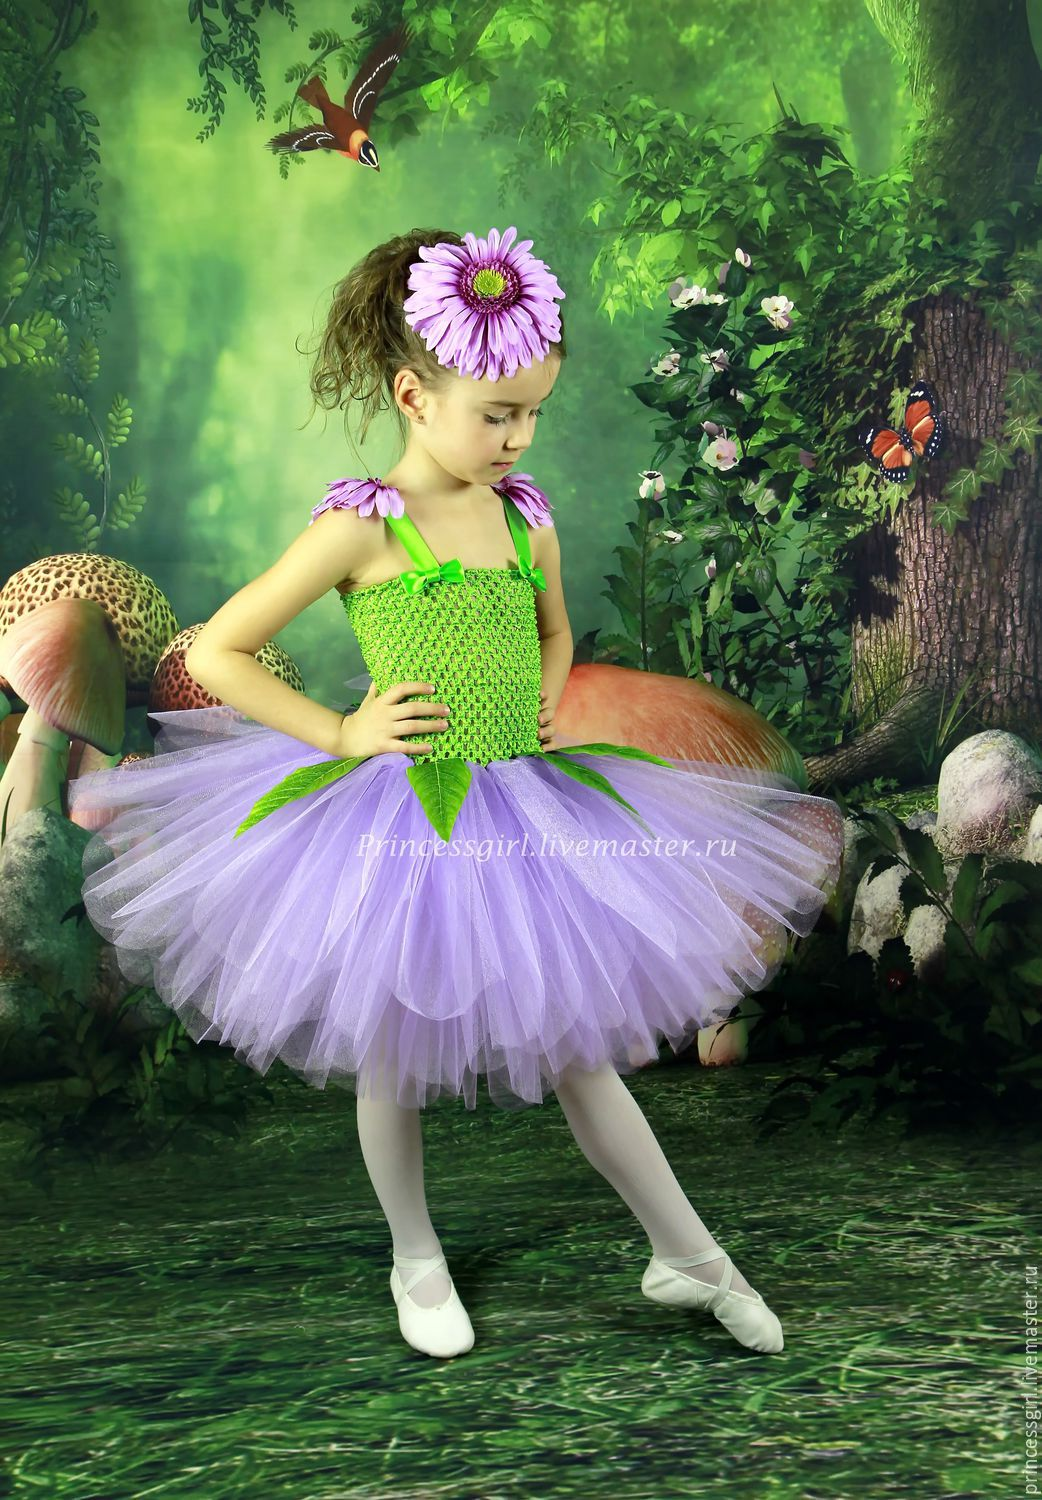 Flower Costume For Girls Rose Shop Online On Livemaster With